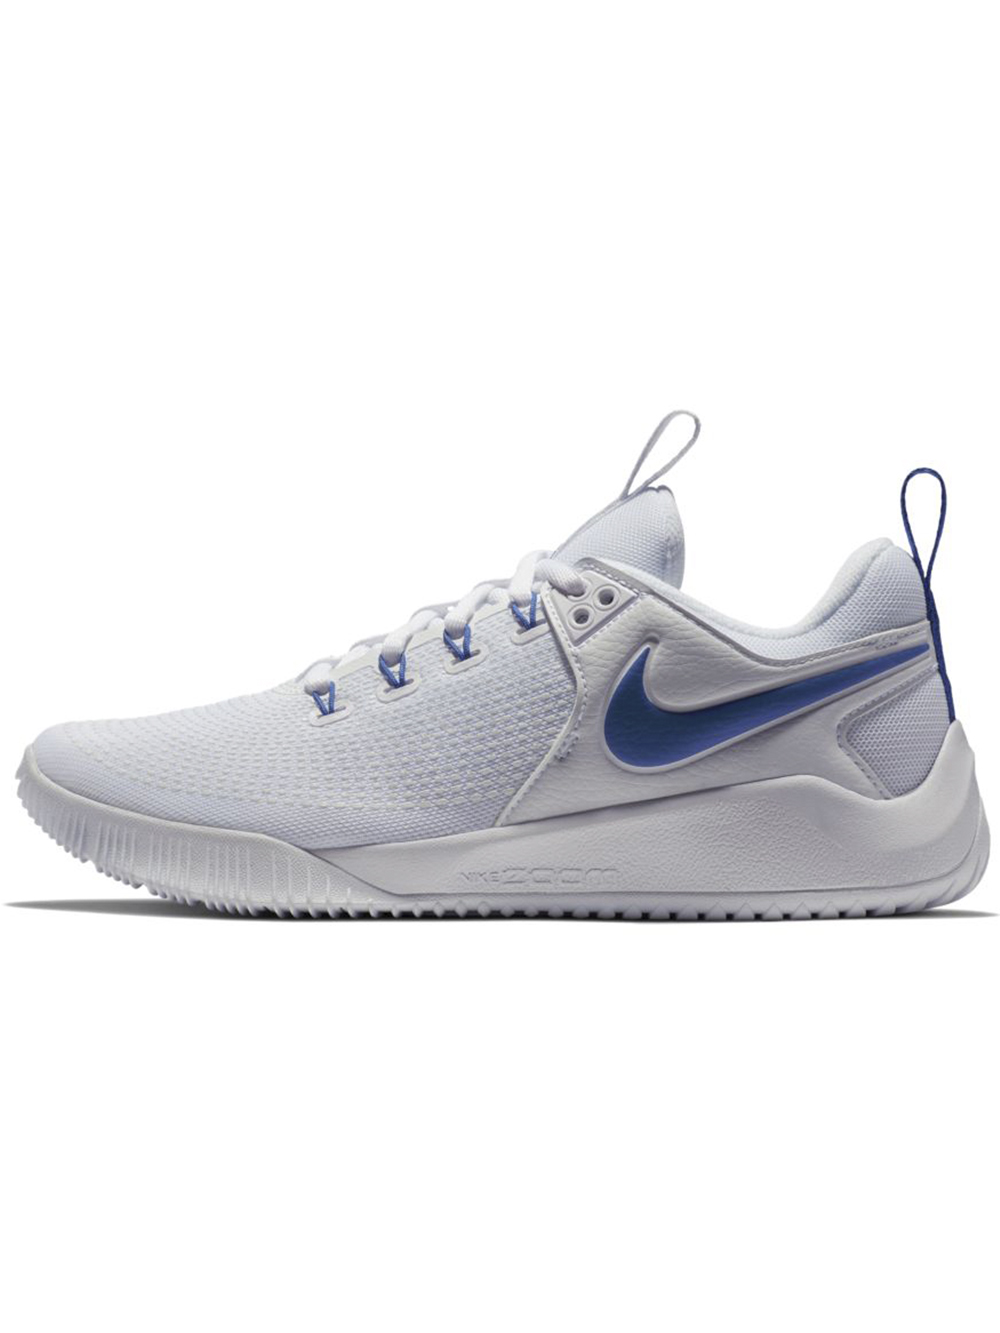 Women's Nike Zoom HyperAce 2 Shoes WhiteRoyal | Midwest Volleyball Warehouse